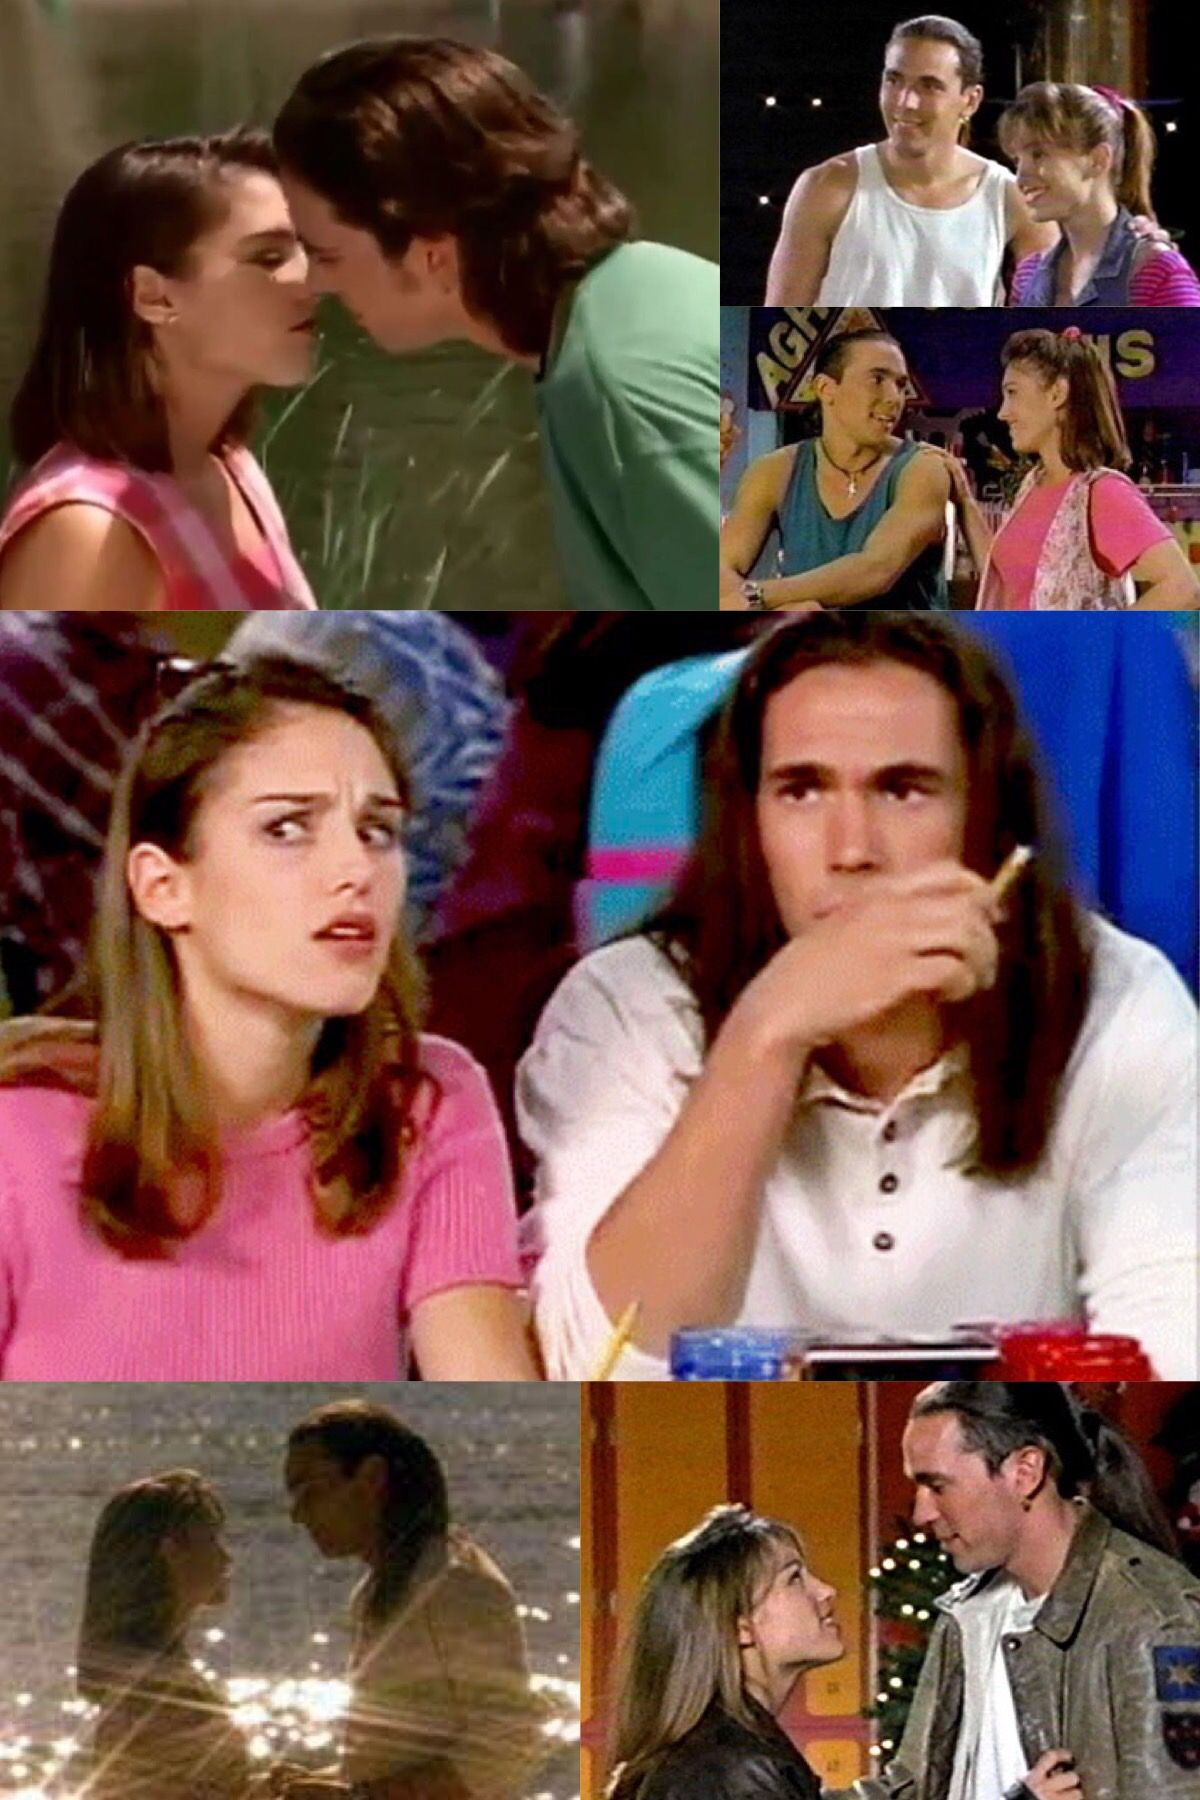 Various moments of Kimberly Hart and Tommy Oliver from MMPR.